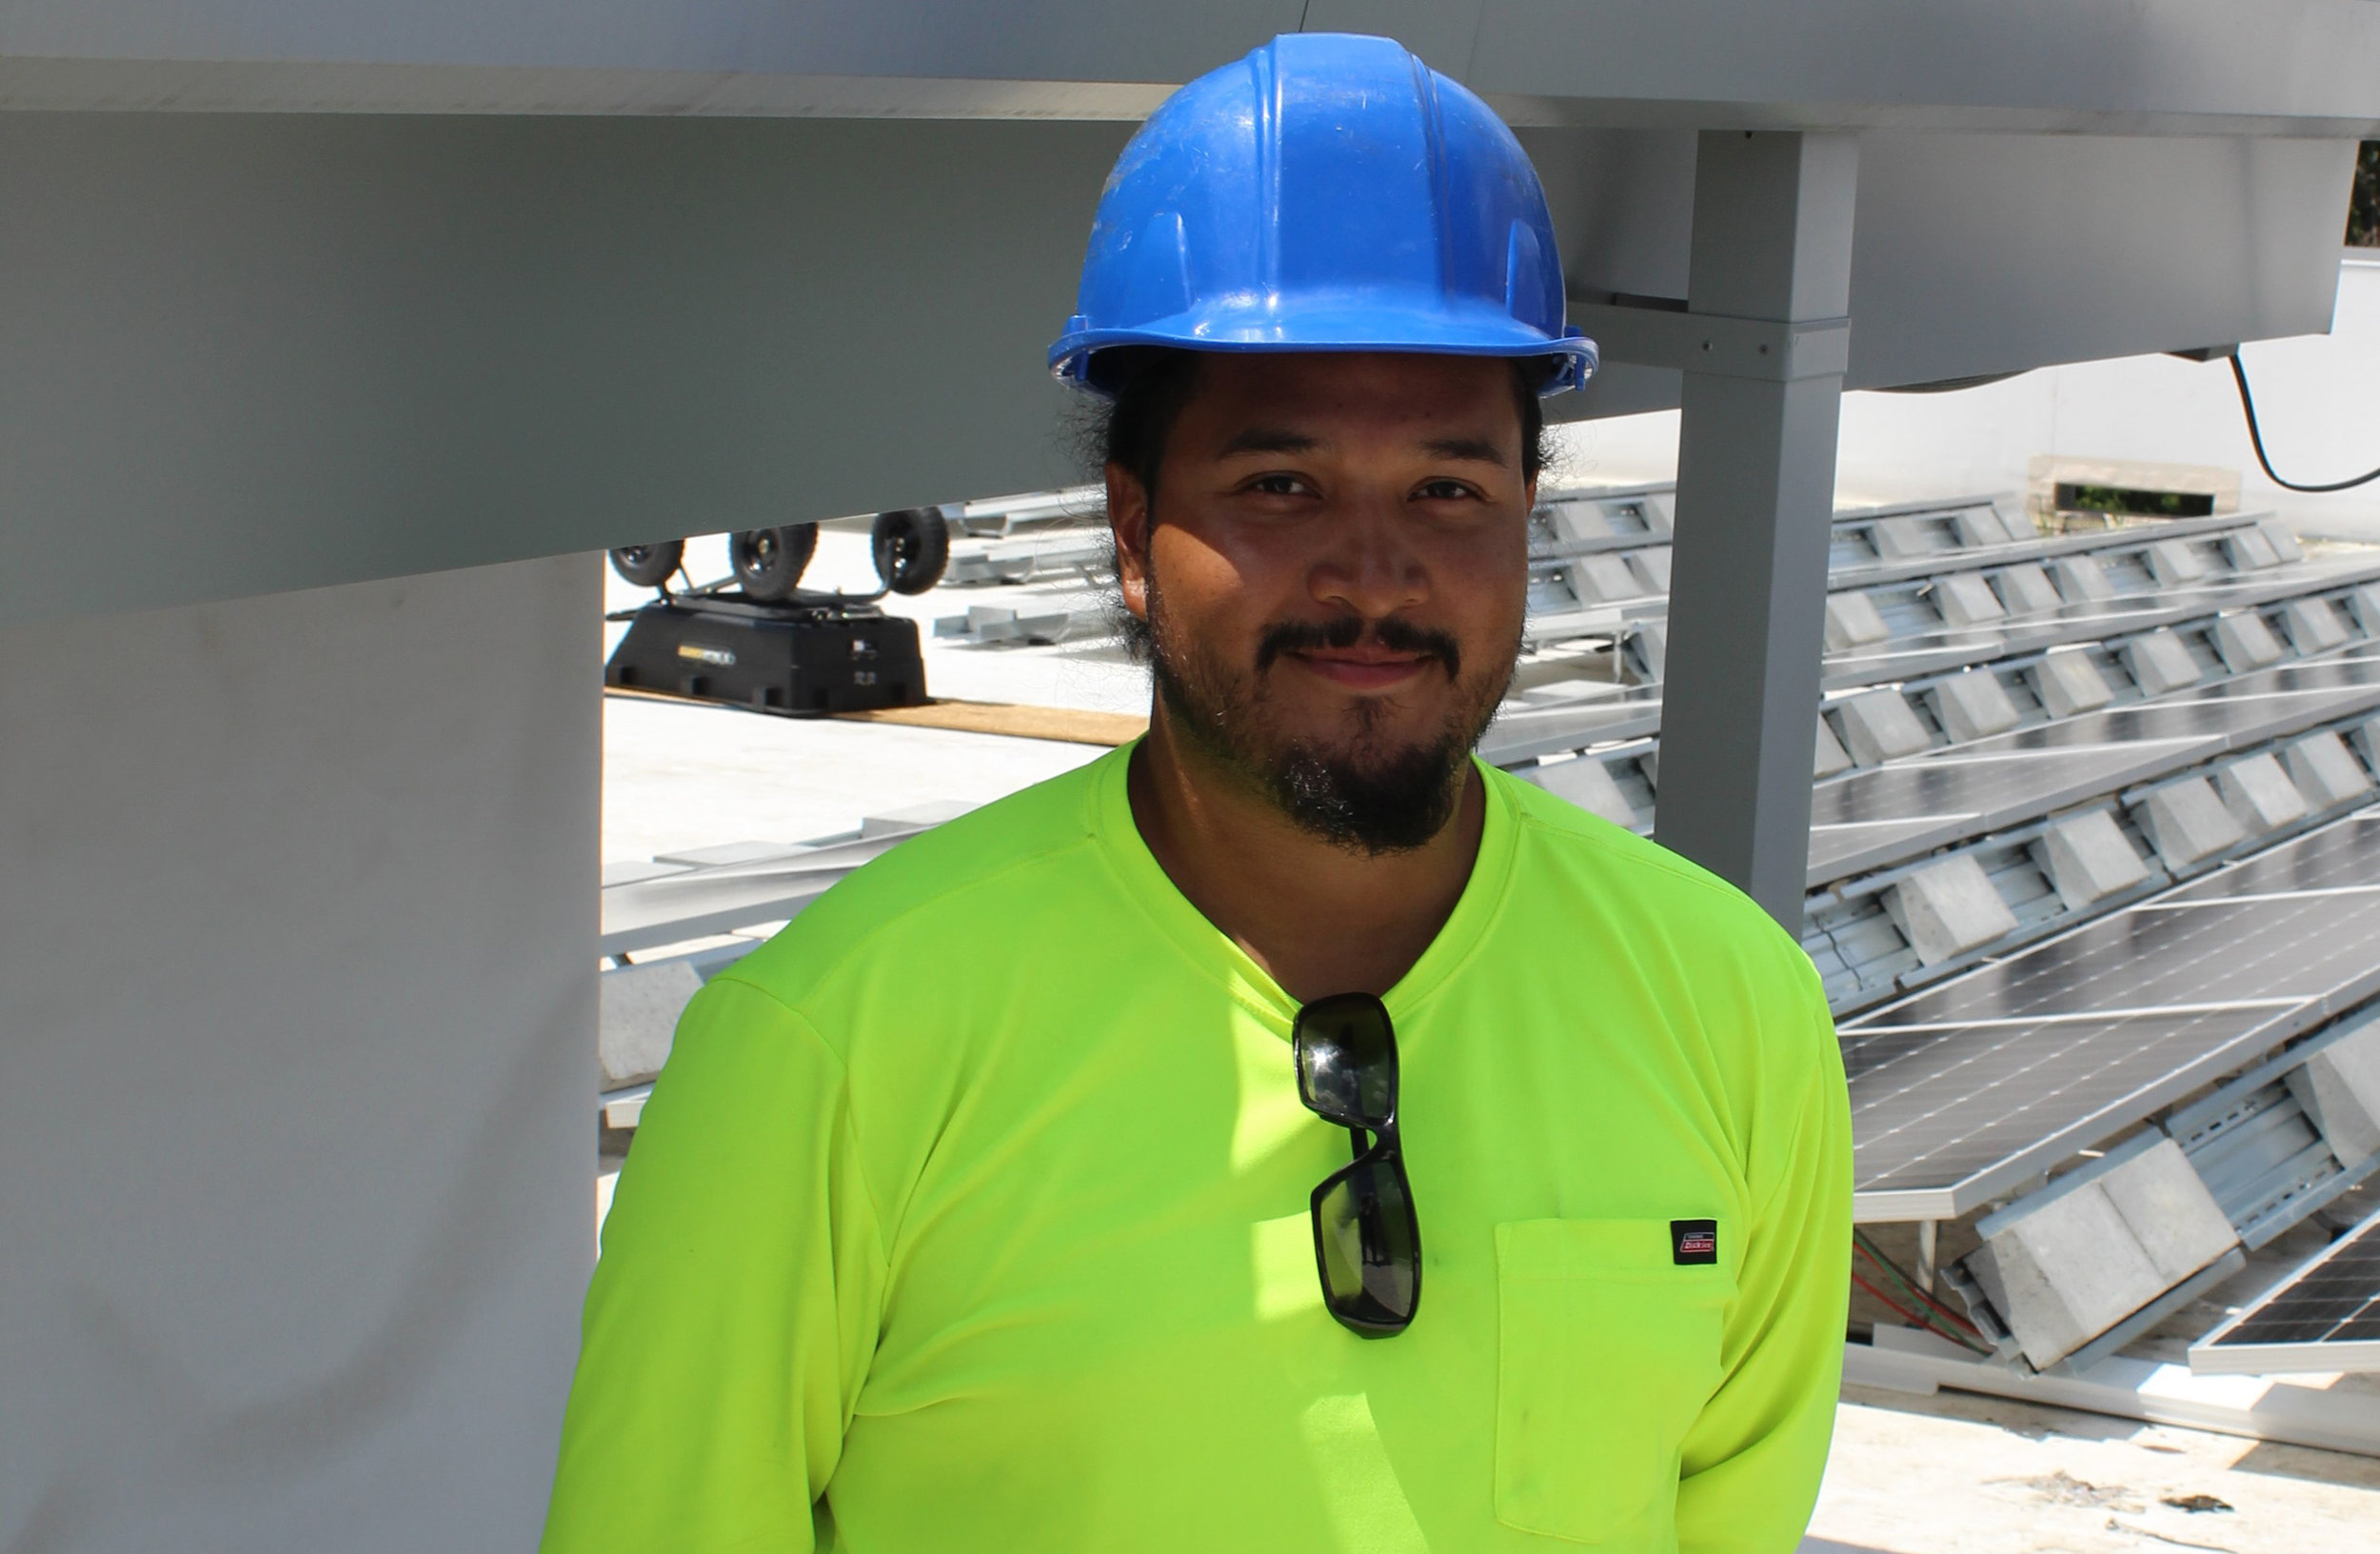 Raul Urzua, a member of the CTEC Solar crew, takes a break from installing solar panels at the Whole Foods Market Sudbury.